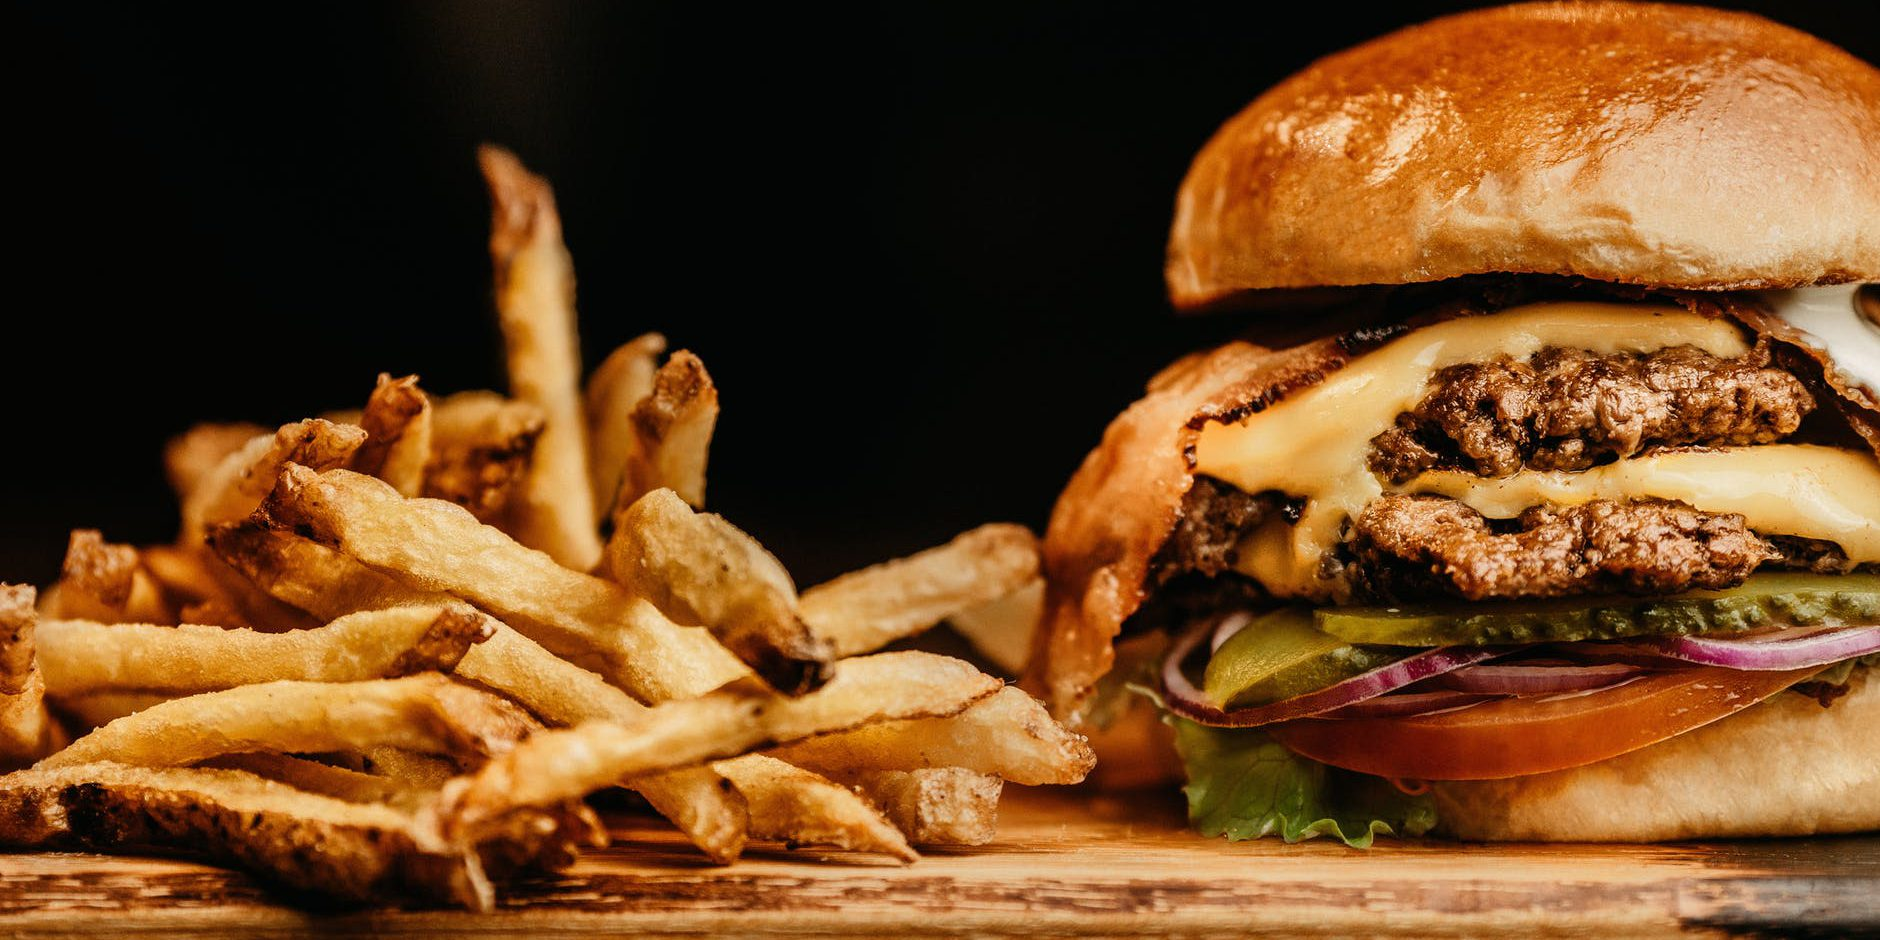 Close up photo of a Veggie style burger and fries.